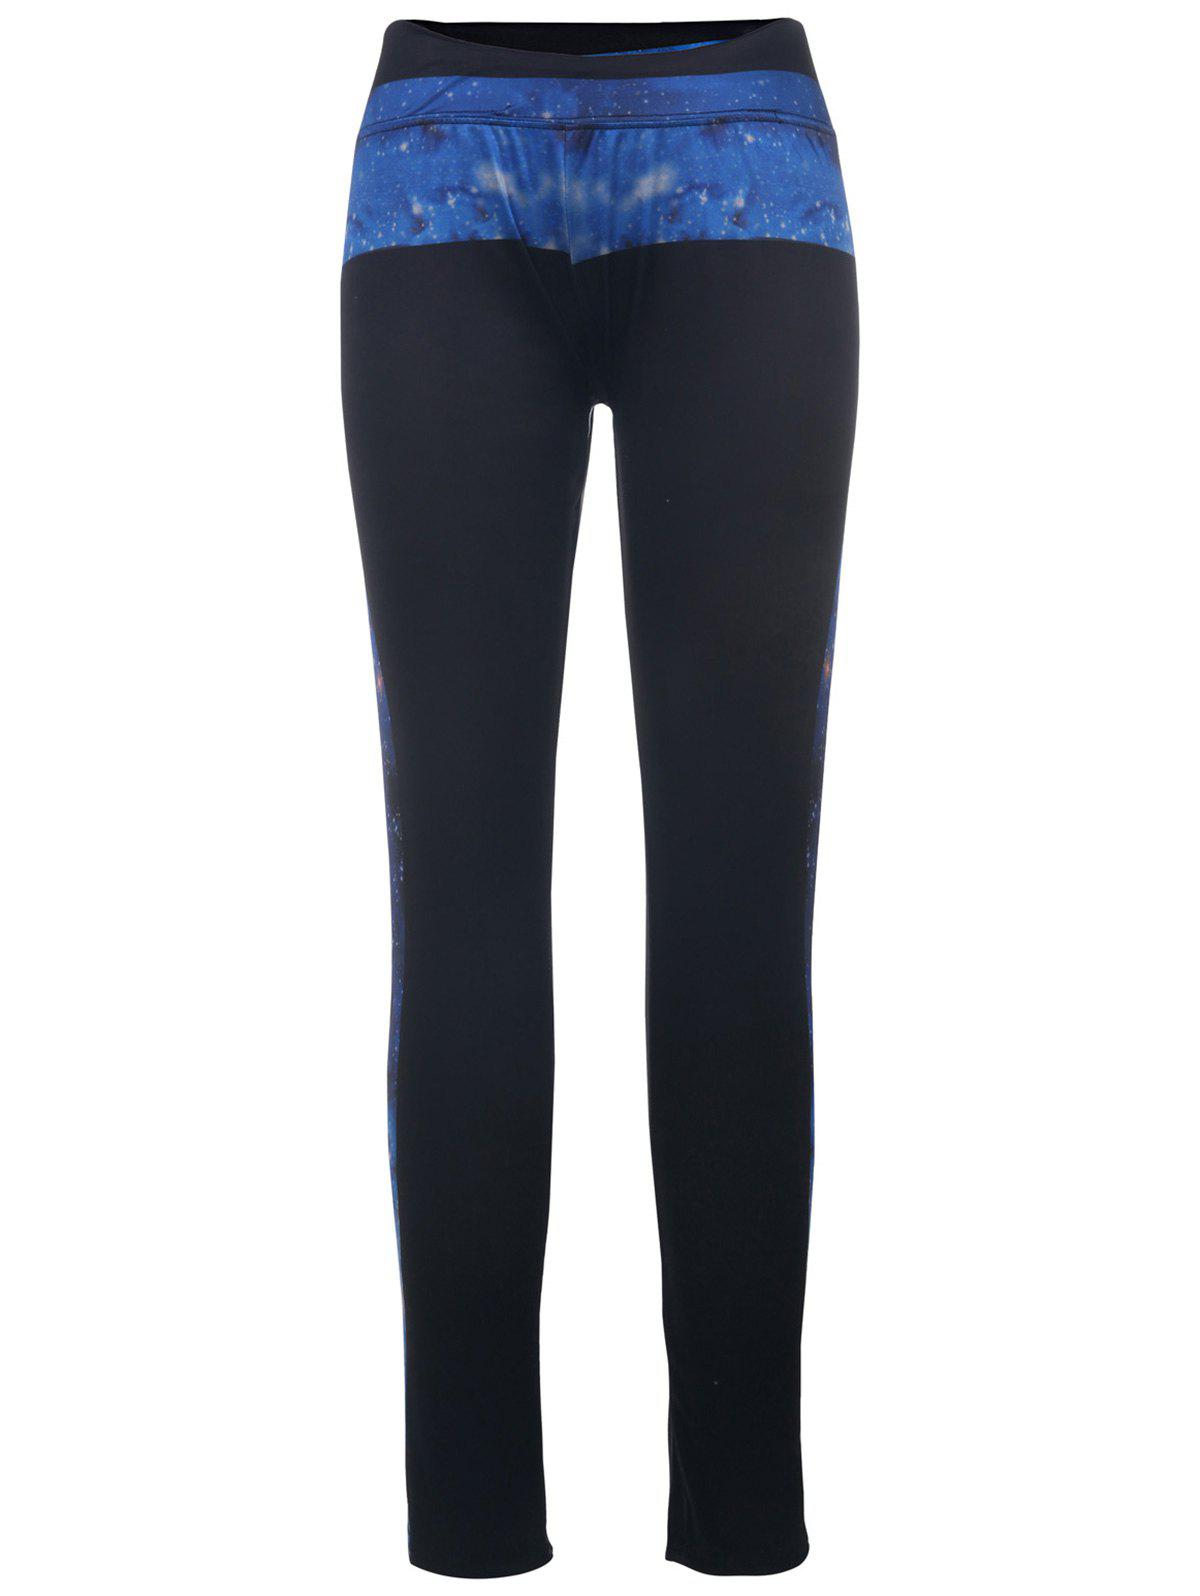 Fancy Stylish High-Waisted Printed Slimming Women's Yoga Pants